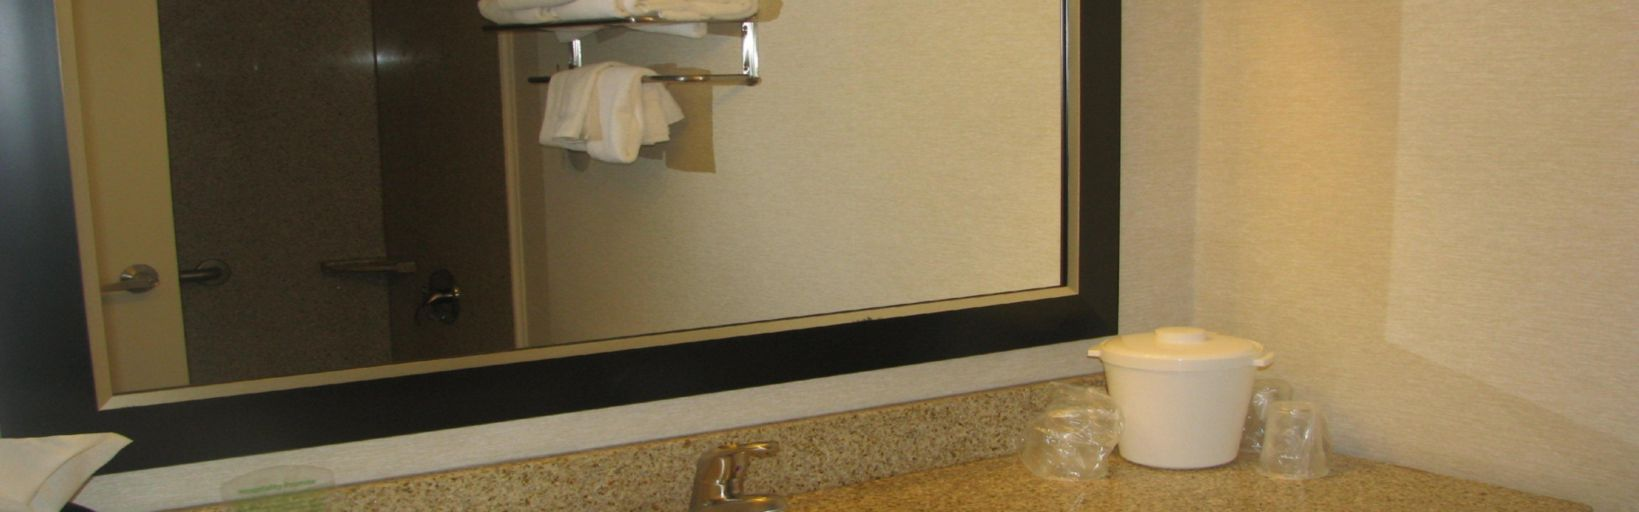 Concord New Hampshire Hotels Holiday Inn Concord Downtown Ihg